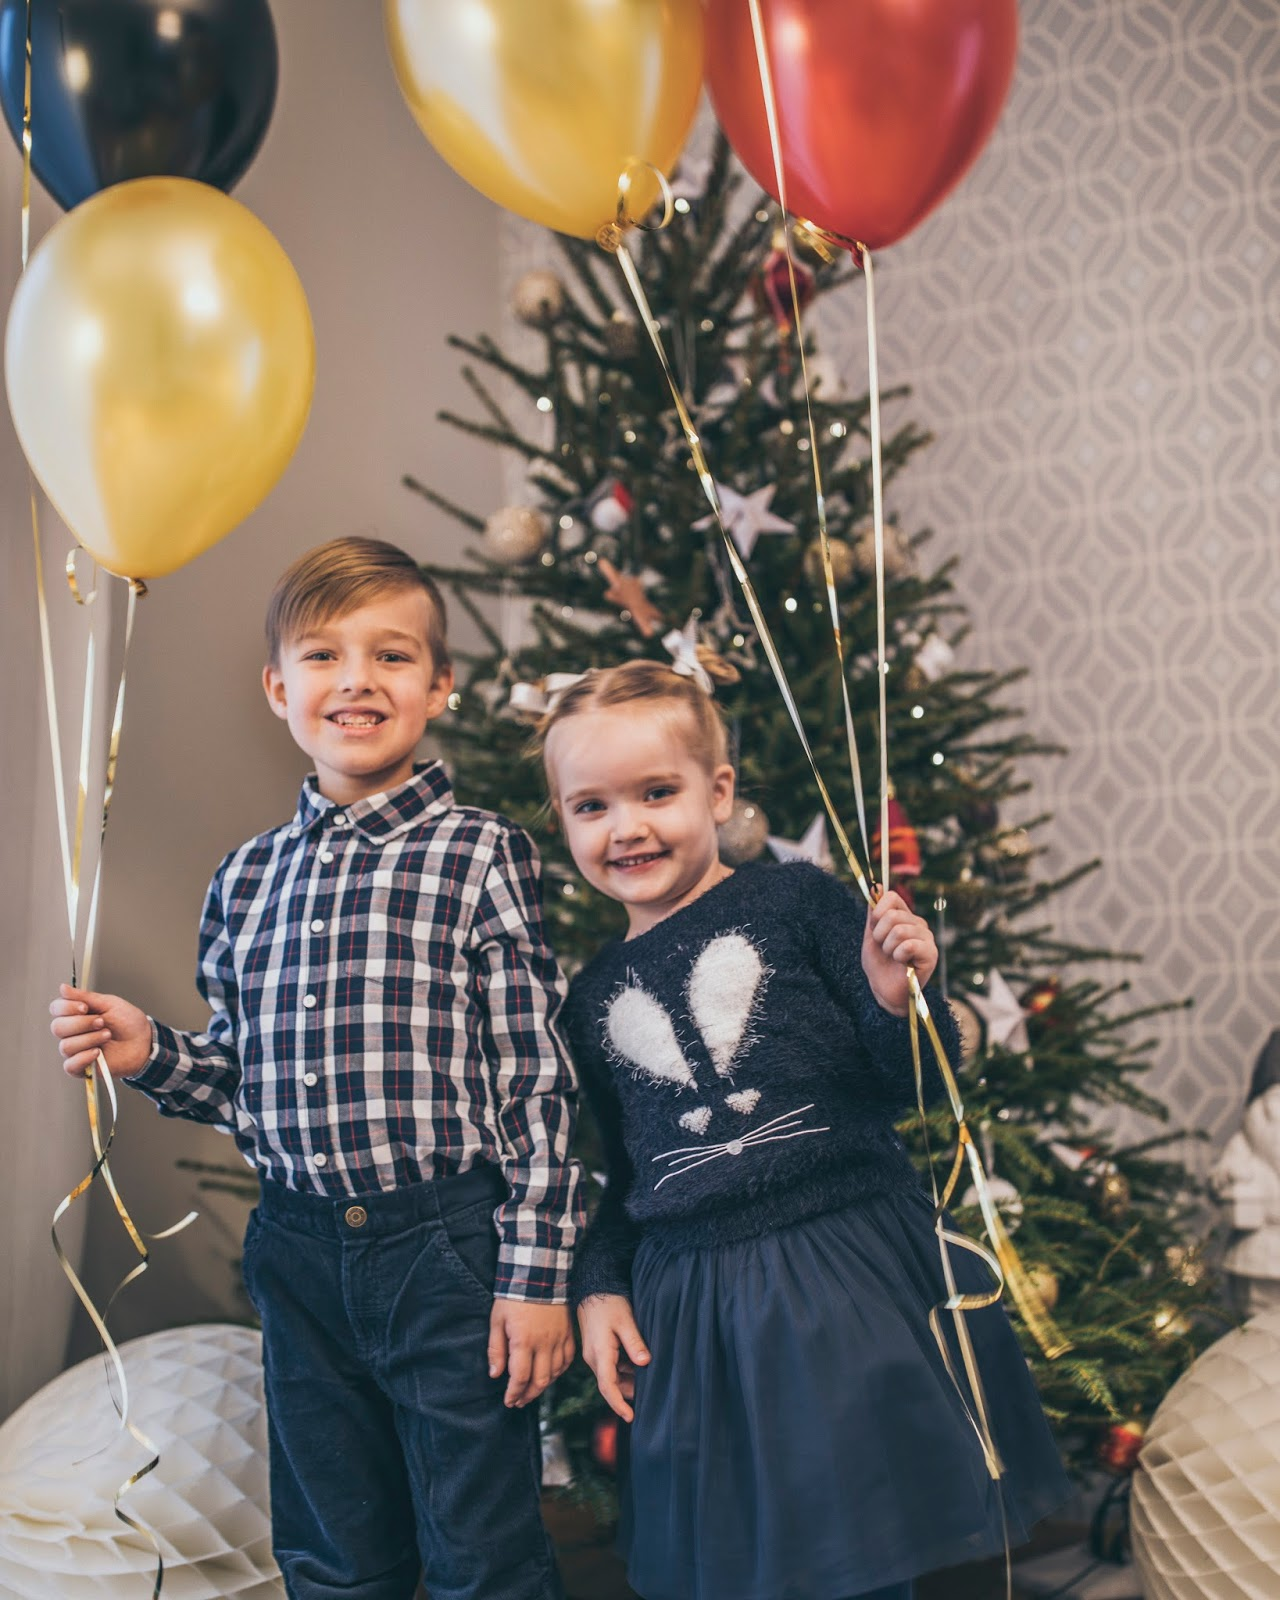 kids christmas balloons celebration photography